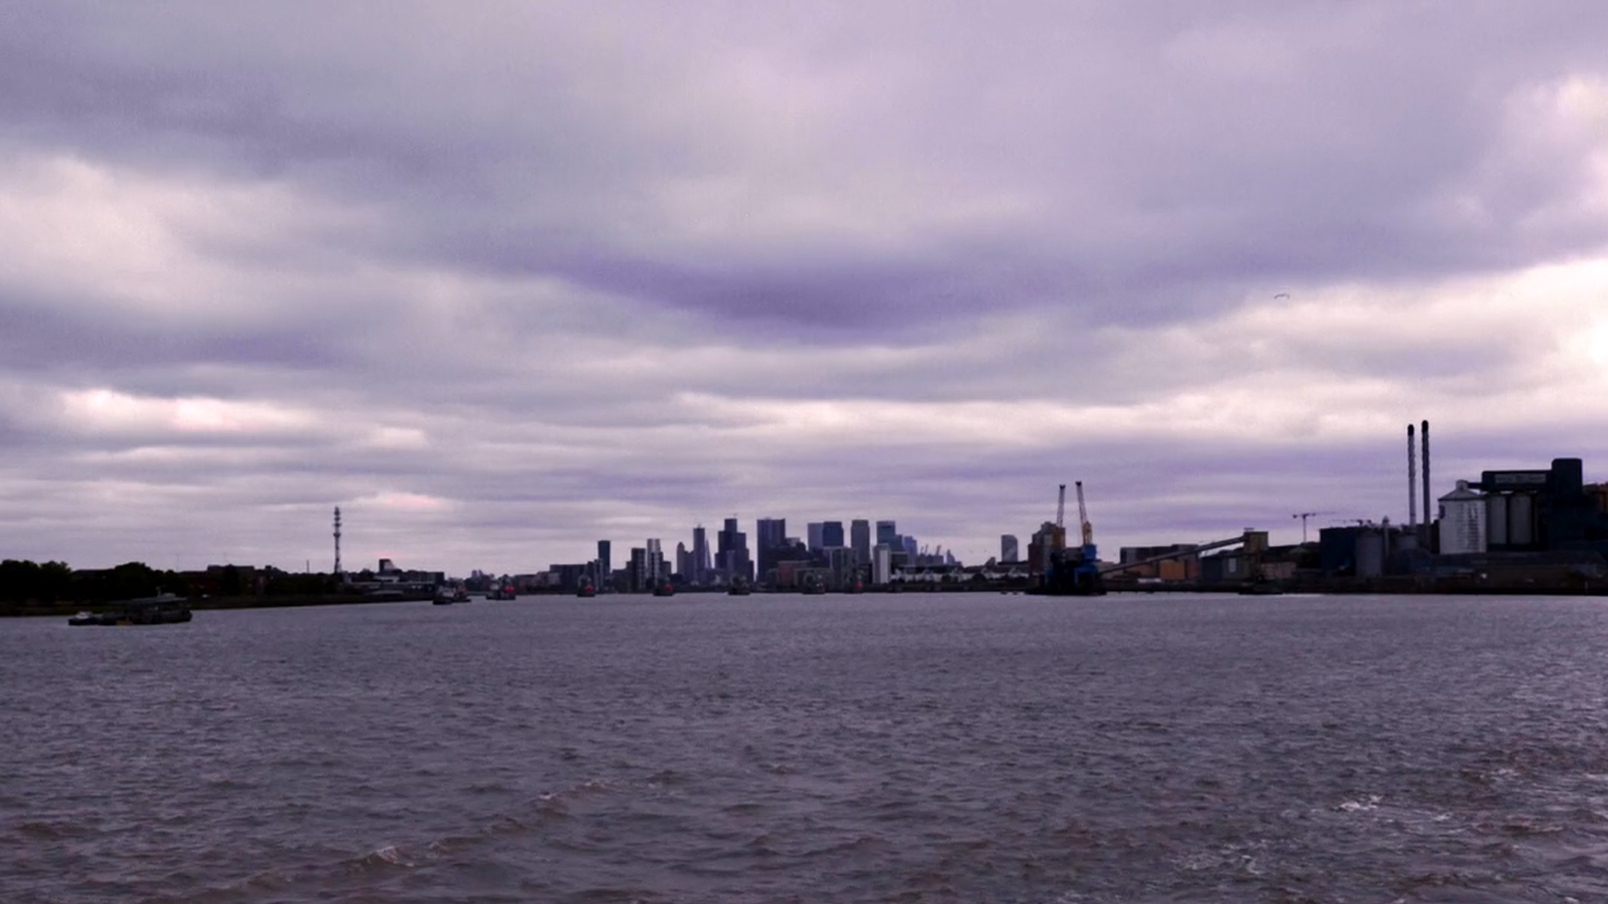 A picture of London's horizon, taken from a boat on the Thames itself, from East London. The buildings are small on the horizon, and the clouds are grey overhead.